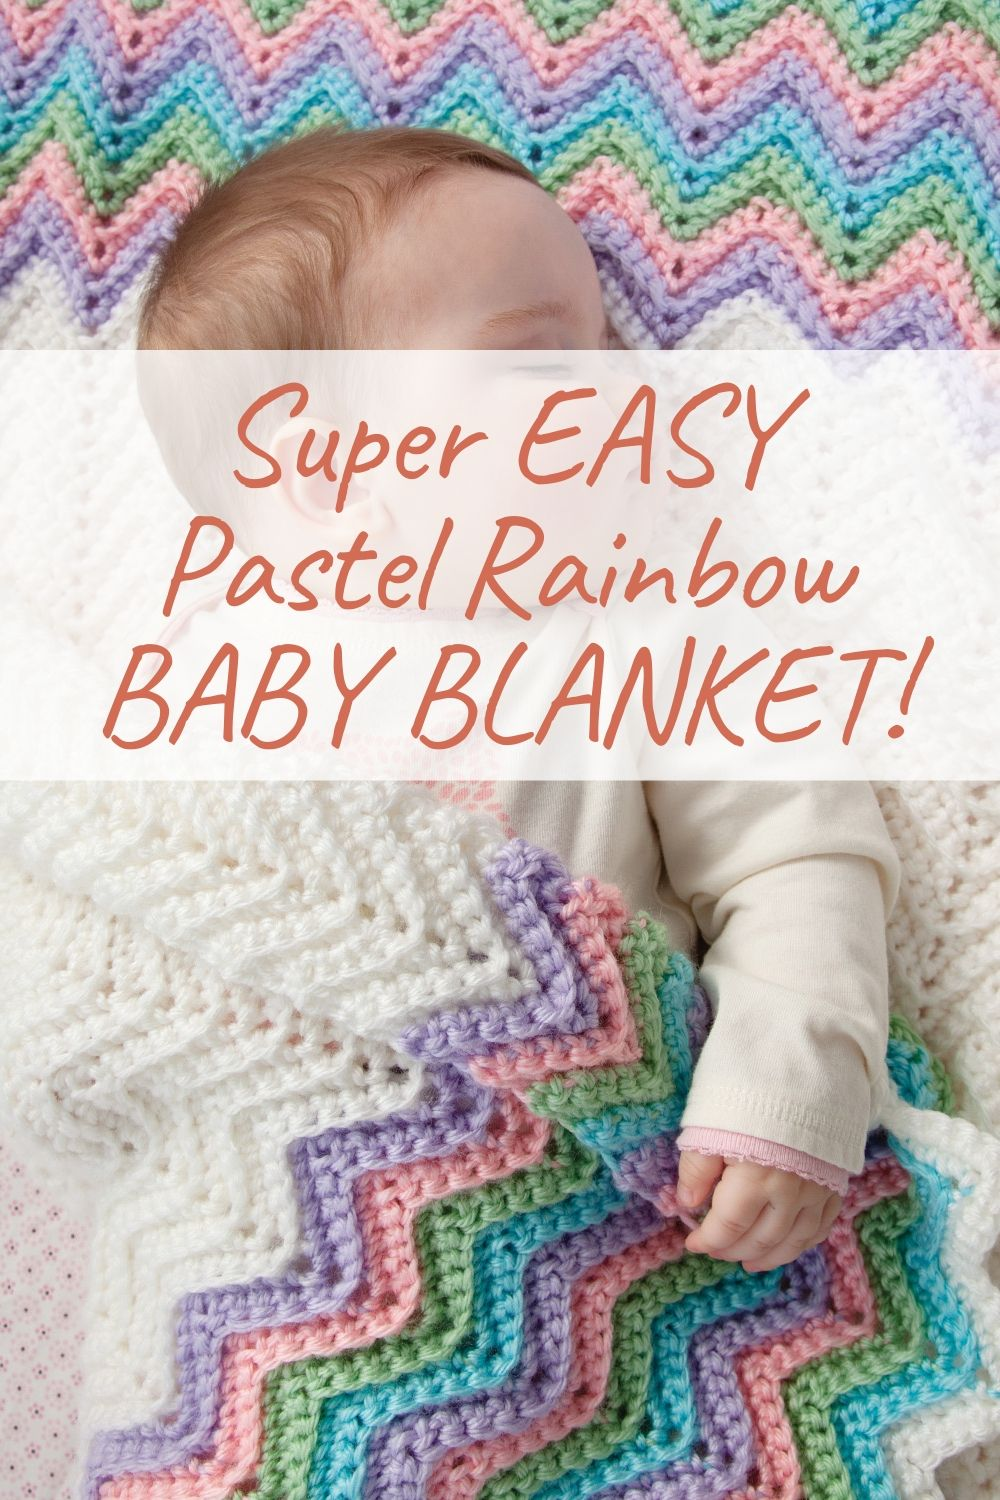 Super EASY Pastel Rainbow BABY BLANKET!